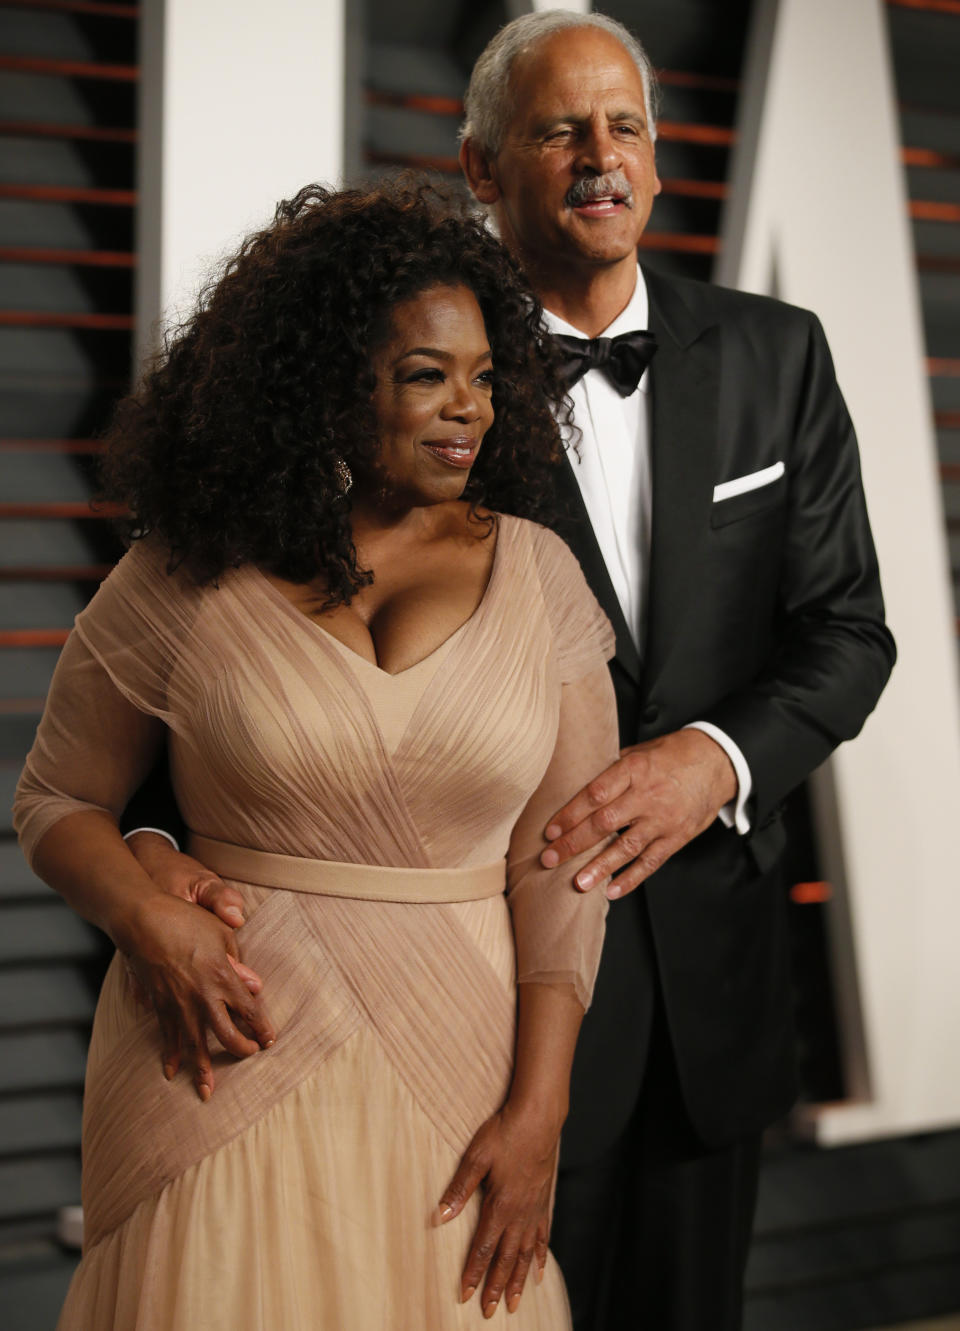 Oprah Winfrey and partner Stedman Graham arrive  at the 2015 Vanity Fair Oscar Party in Beverly Hills, California February 22, 2015.  REUTERS/Danny Moloshok (UNITED STATES  - Tags: ENTERTAINMENT)  (VANITY FAIR-ARRIVALS)